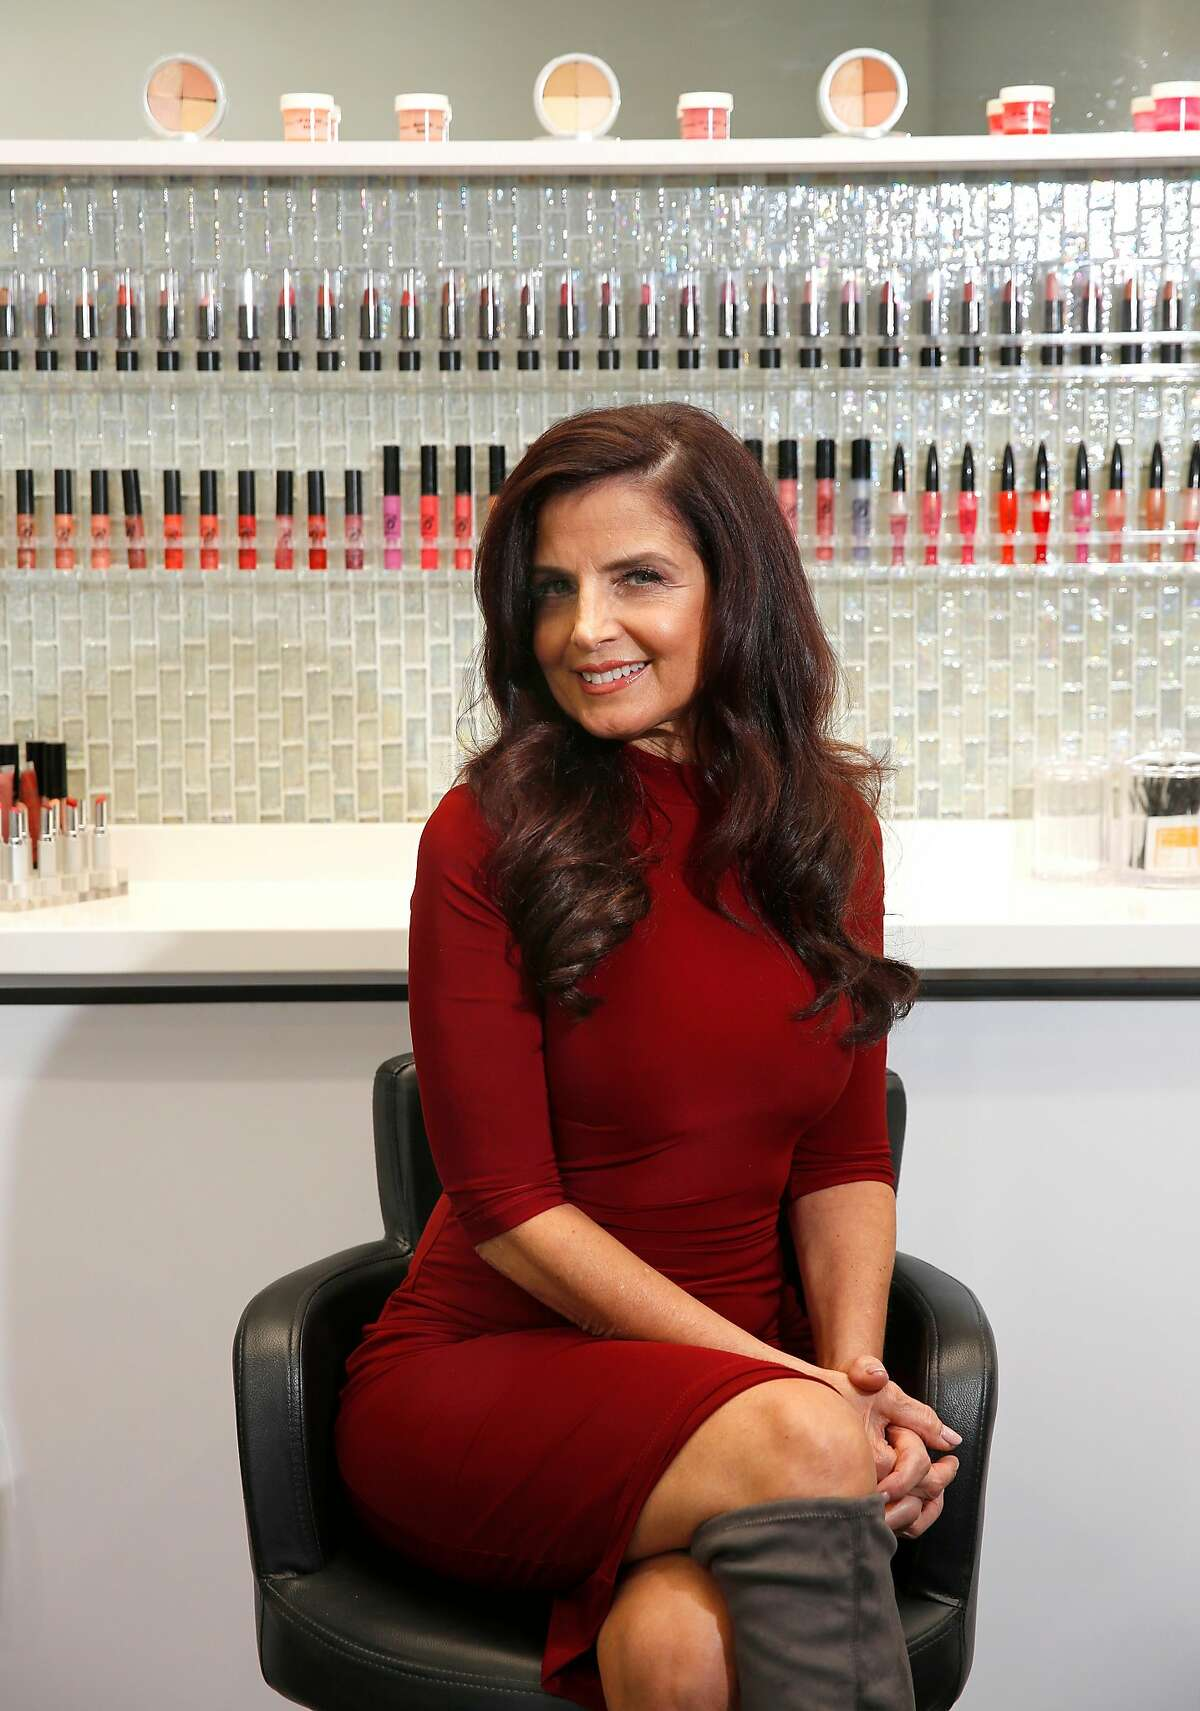 Stephanie Belleci is the creator of the Belleci Color Control Anti-Aging Foundation System, seen at Salon One in Alamo, Ca. on Tuesday October 31, 2017.